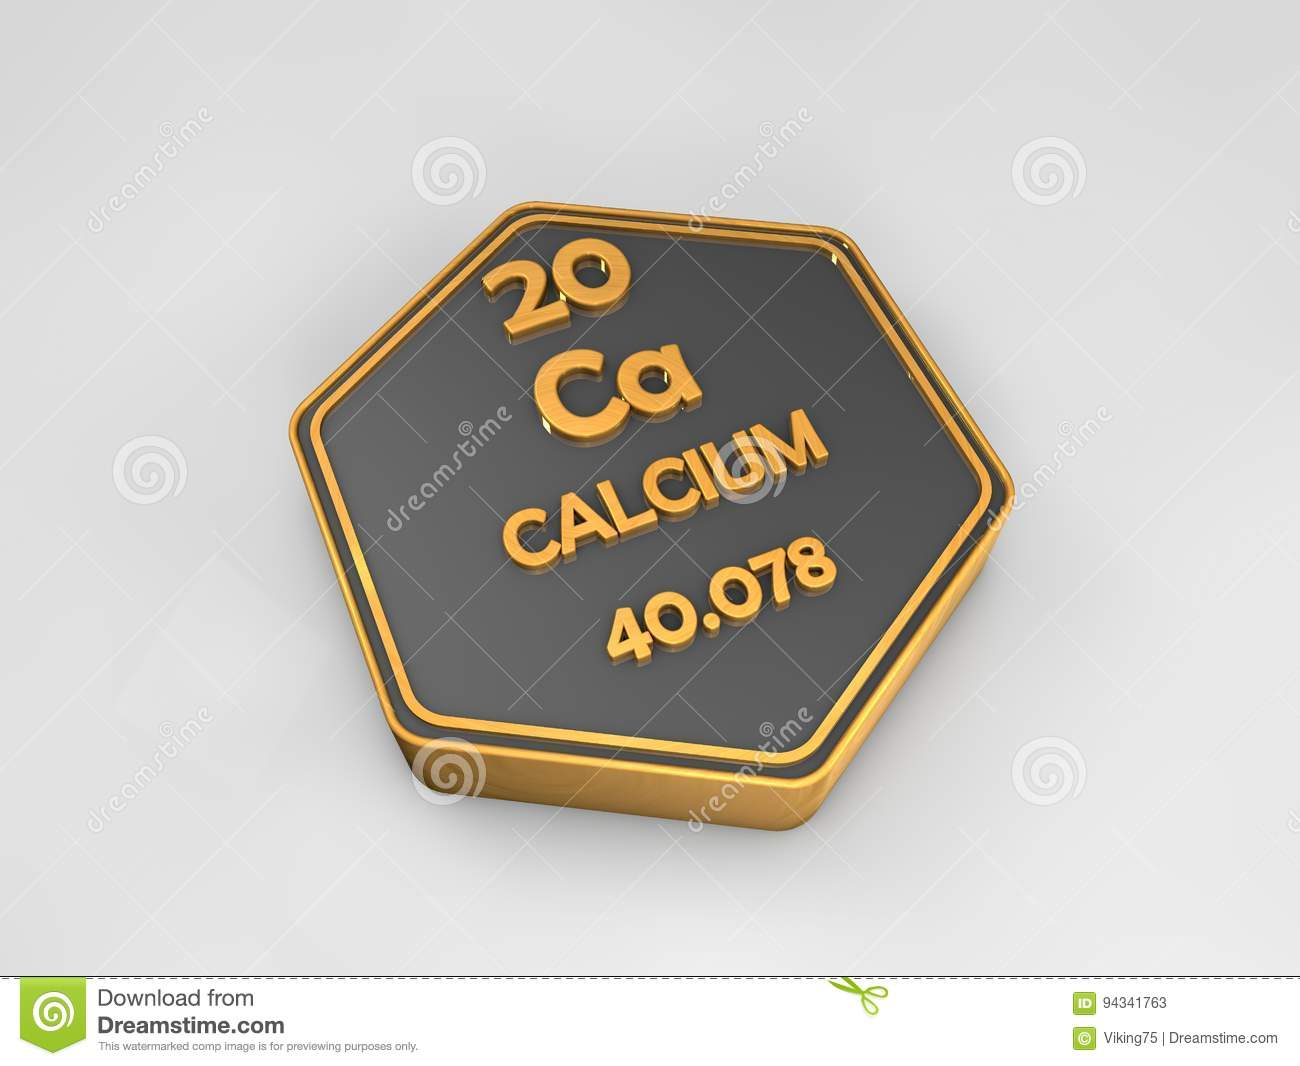 Calcium ca chemical element periodic table hexagonal shape stock download calcium ca chemical element periodic table hexagonal shape stock illustration illustration of urtaz Gallery